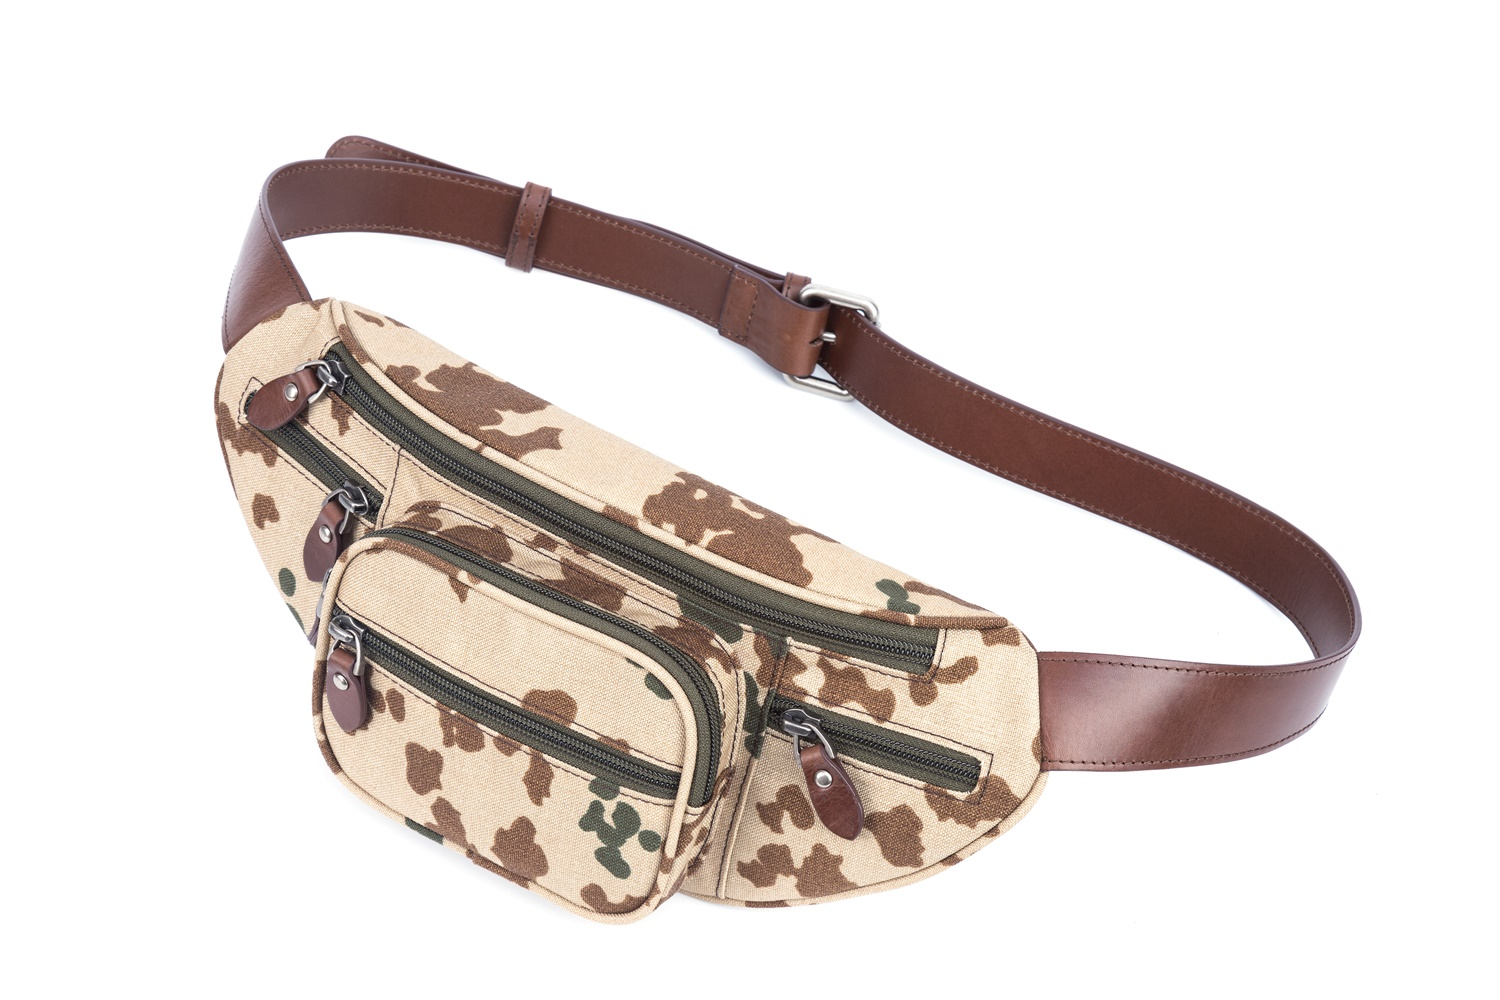 GF bags-Body Bag Genuine Leather Wax Leather Strap Camouflage Nylon Pocket-gaofeng Bags-4